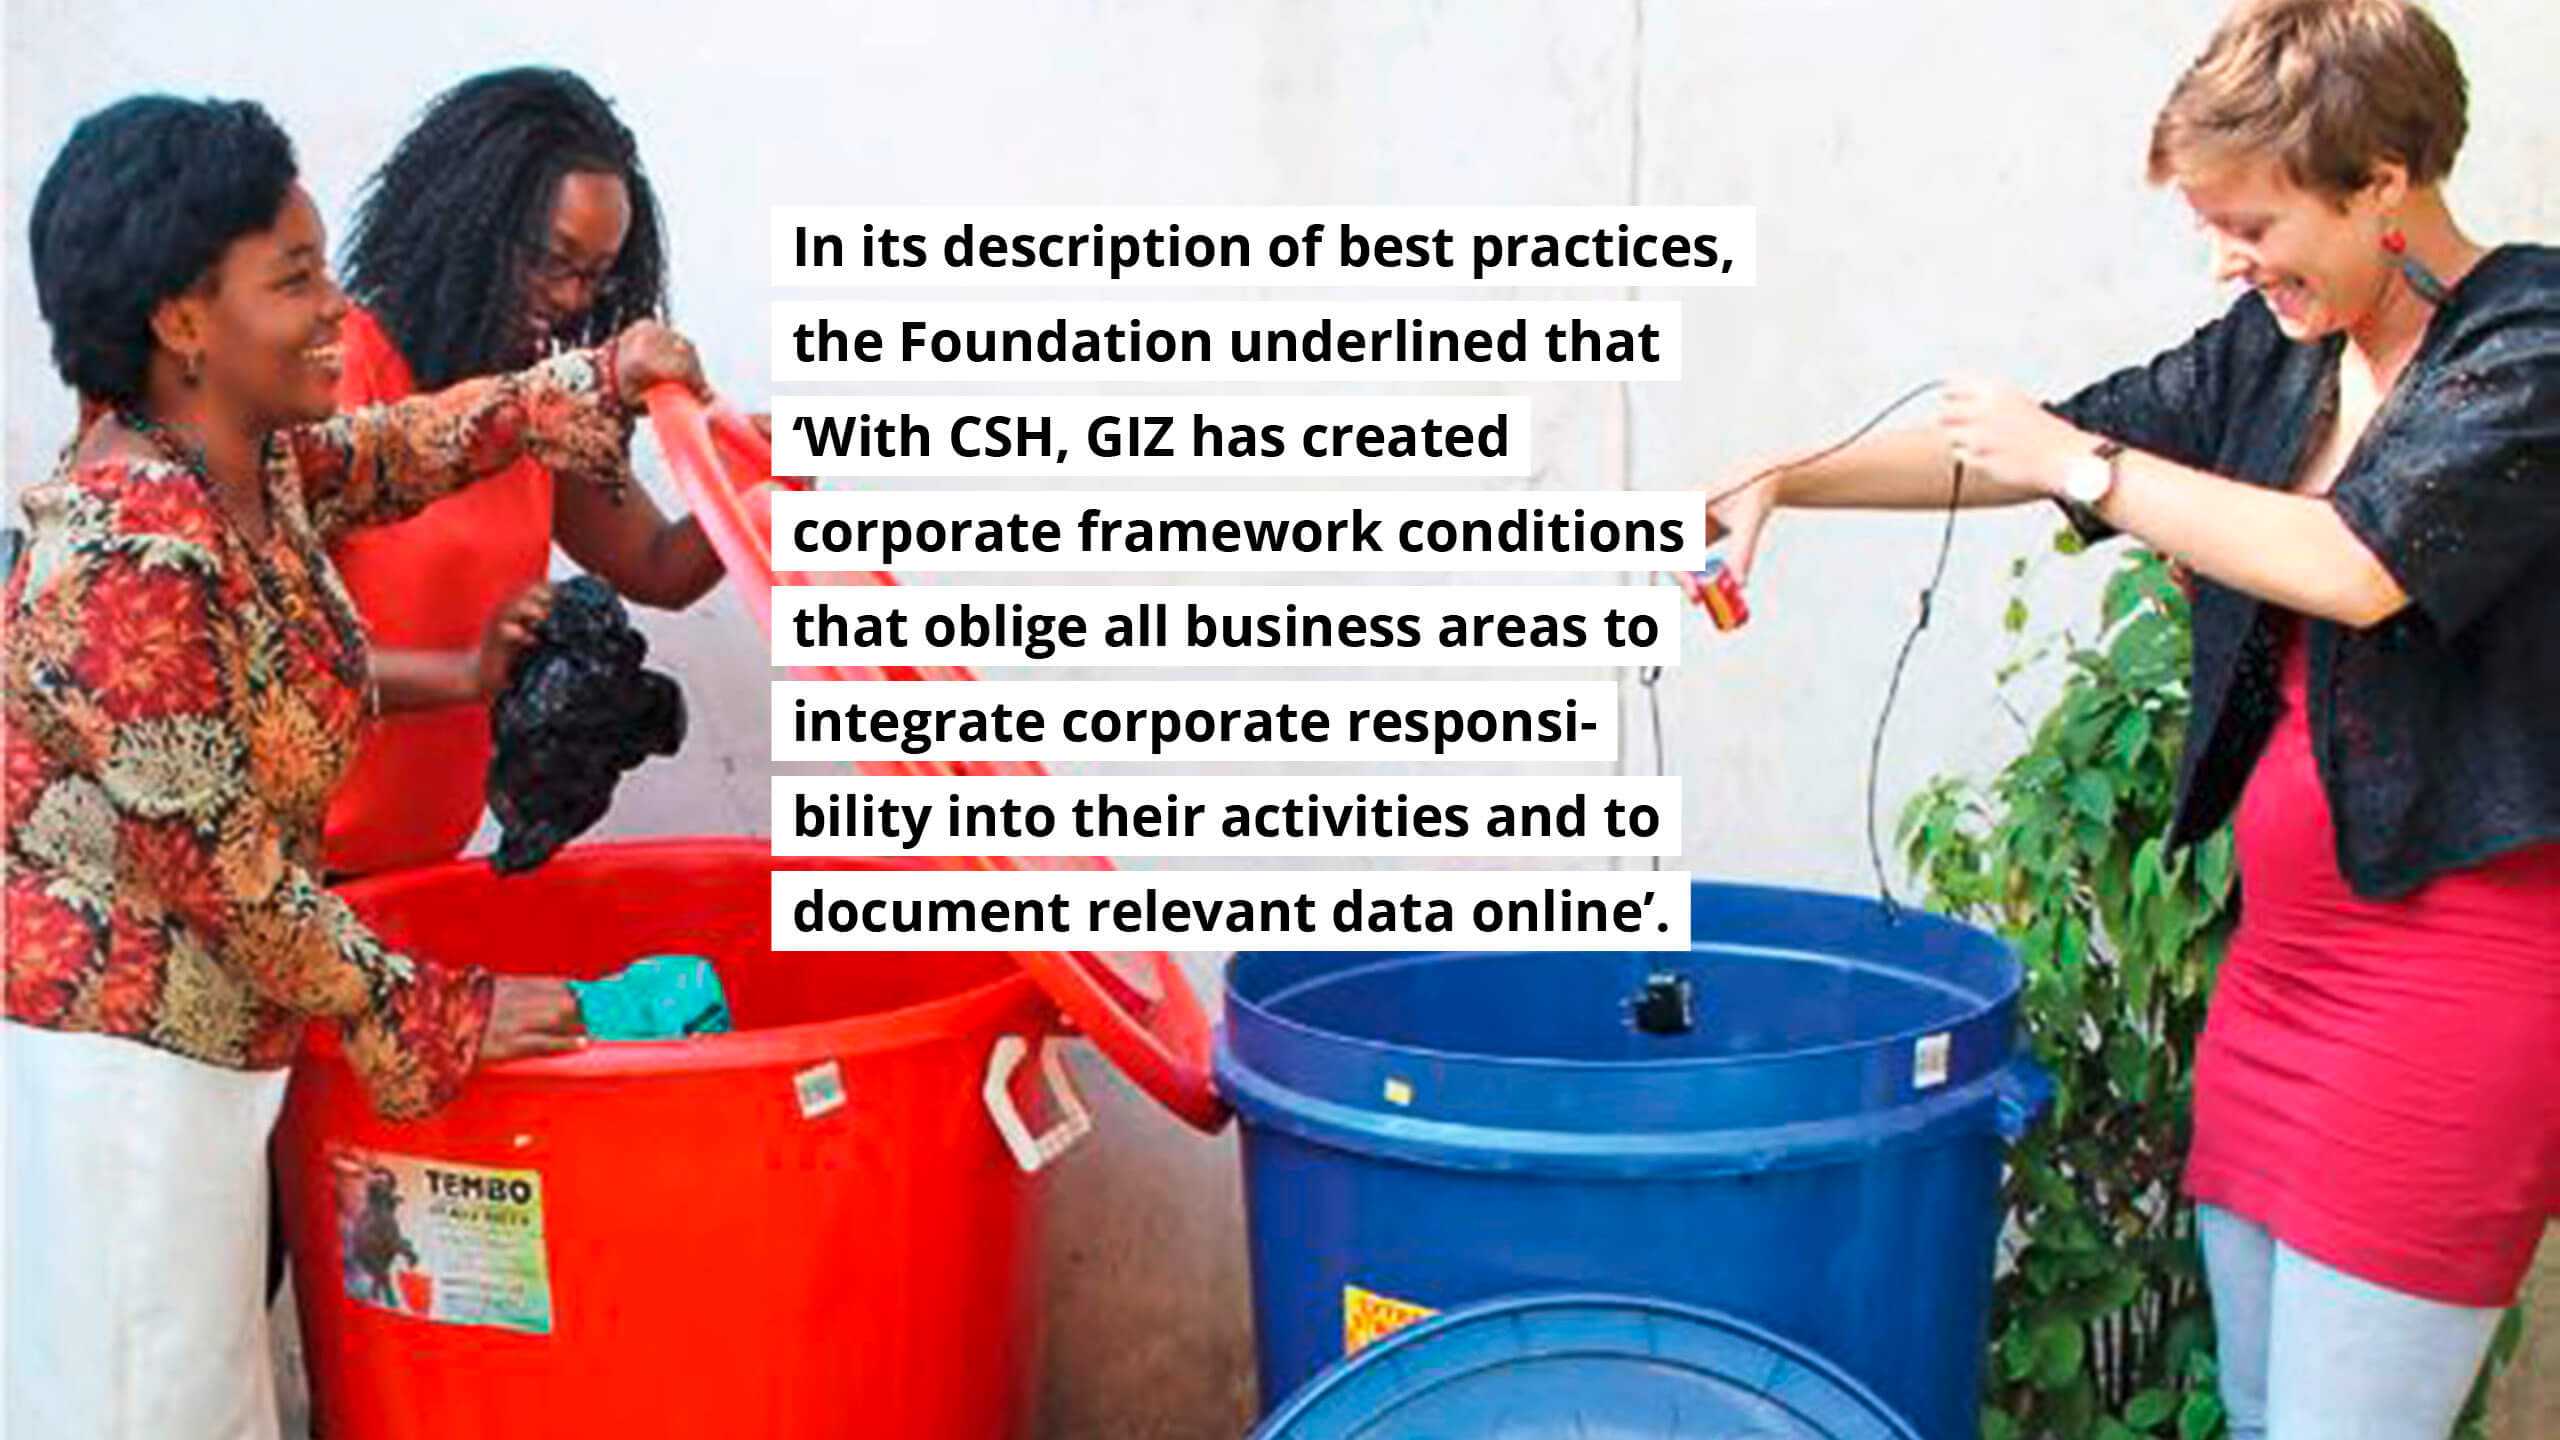 "In its description of best practices, the Foundation underlined that ""With CSH, GIZ has created corporate framework conditions that oblige all business areas to integrate corporate responsibility into their activites and to document relevant data online""."